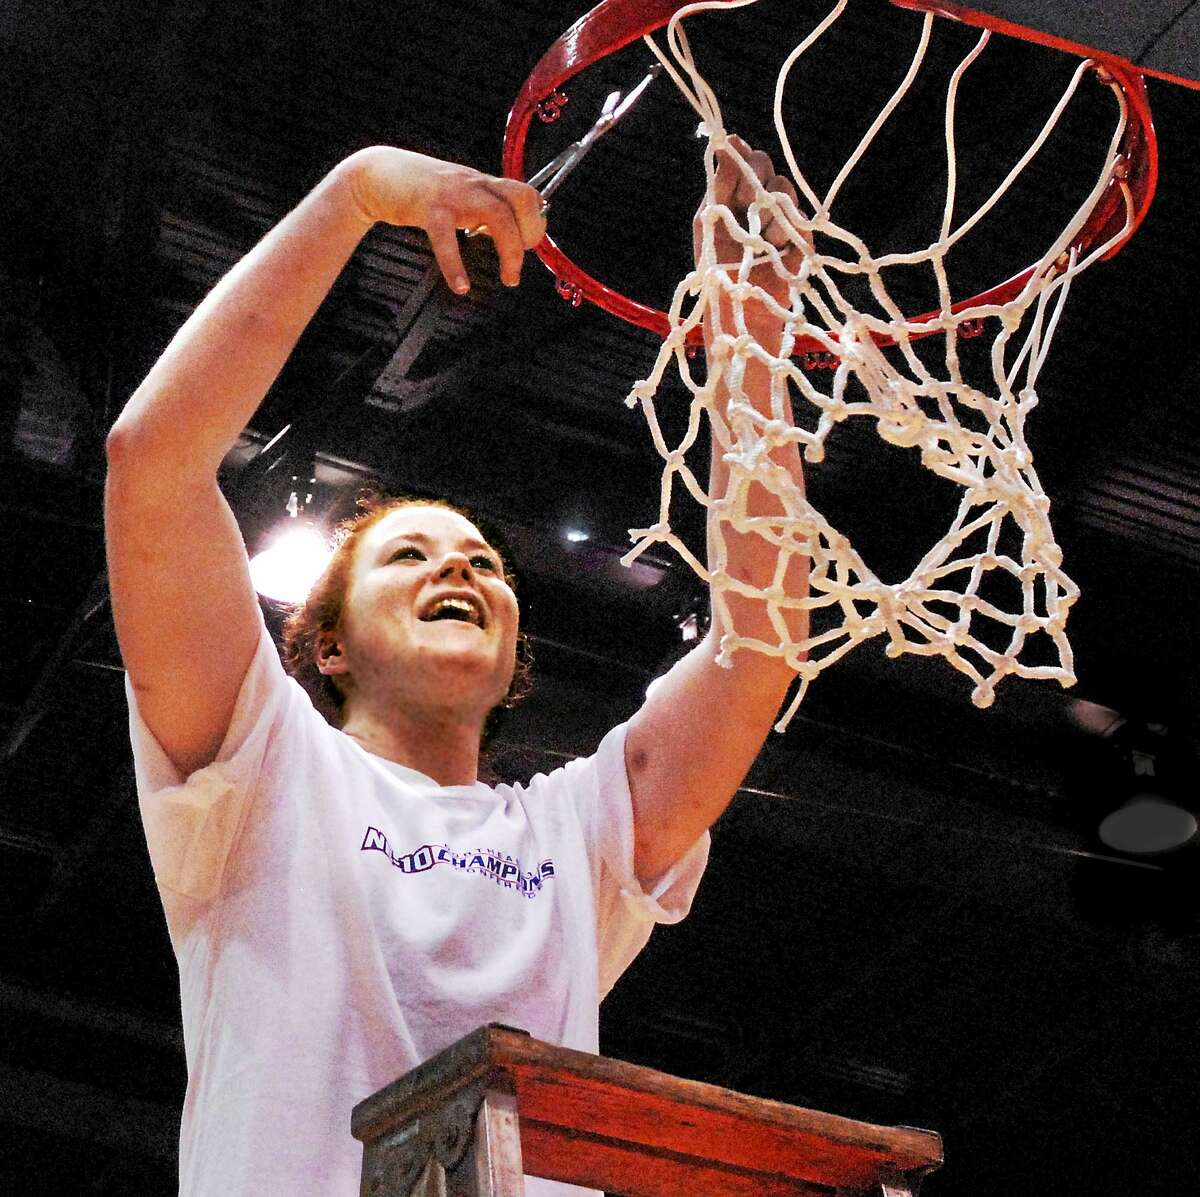 Kate Lynch, shown here cutting down the net after helping SCSU win the Northeast-10 championship in 2007, is expected to be named the Owls new women's basketball coach on Monday.